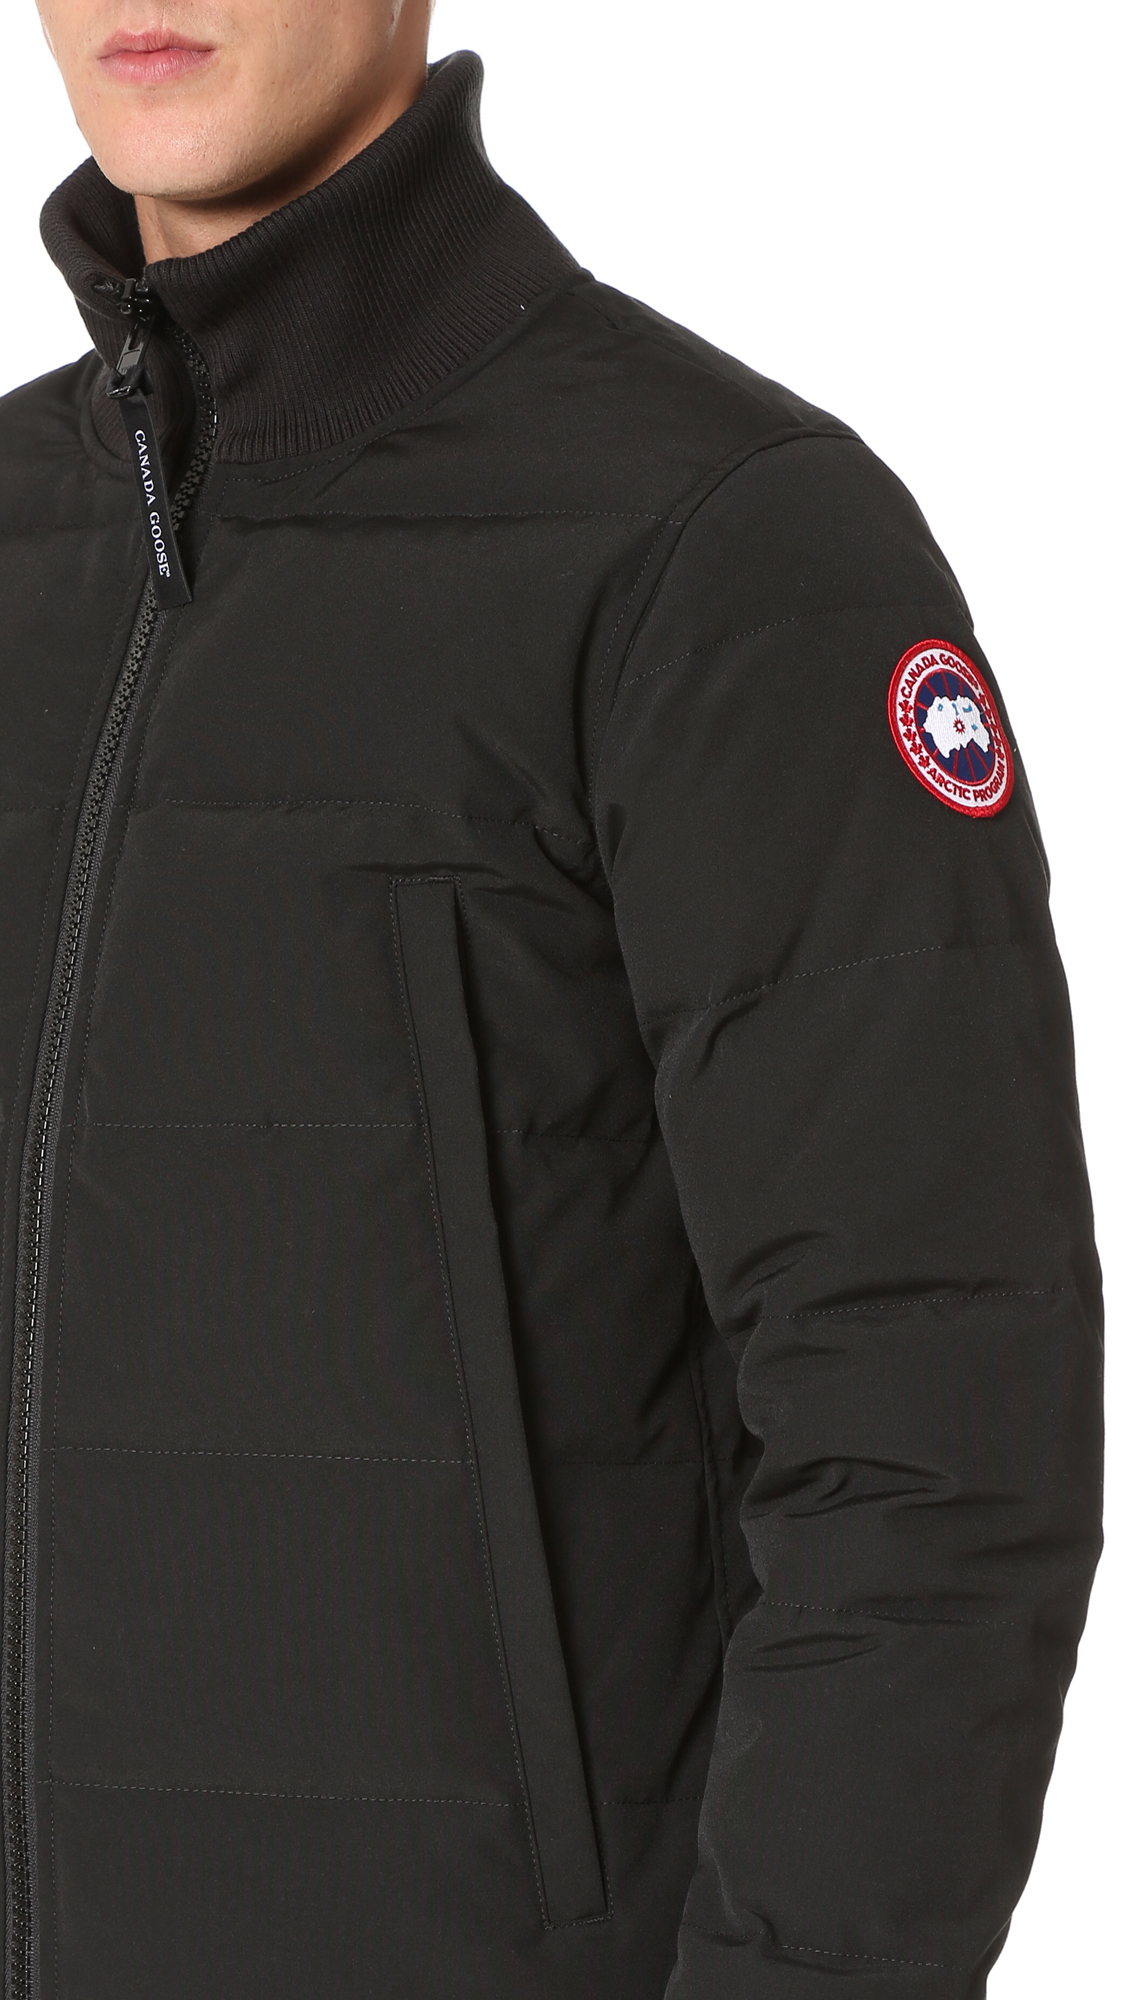 Canada Goose chateau parka outlet authentic - canad3014112867_m5_1-0.jpg